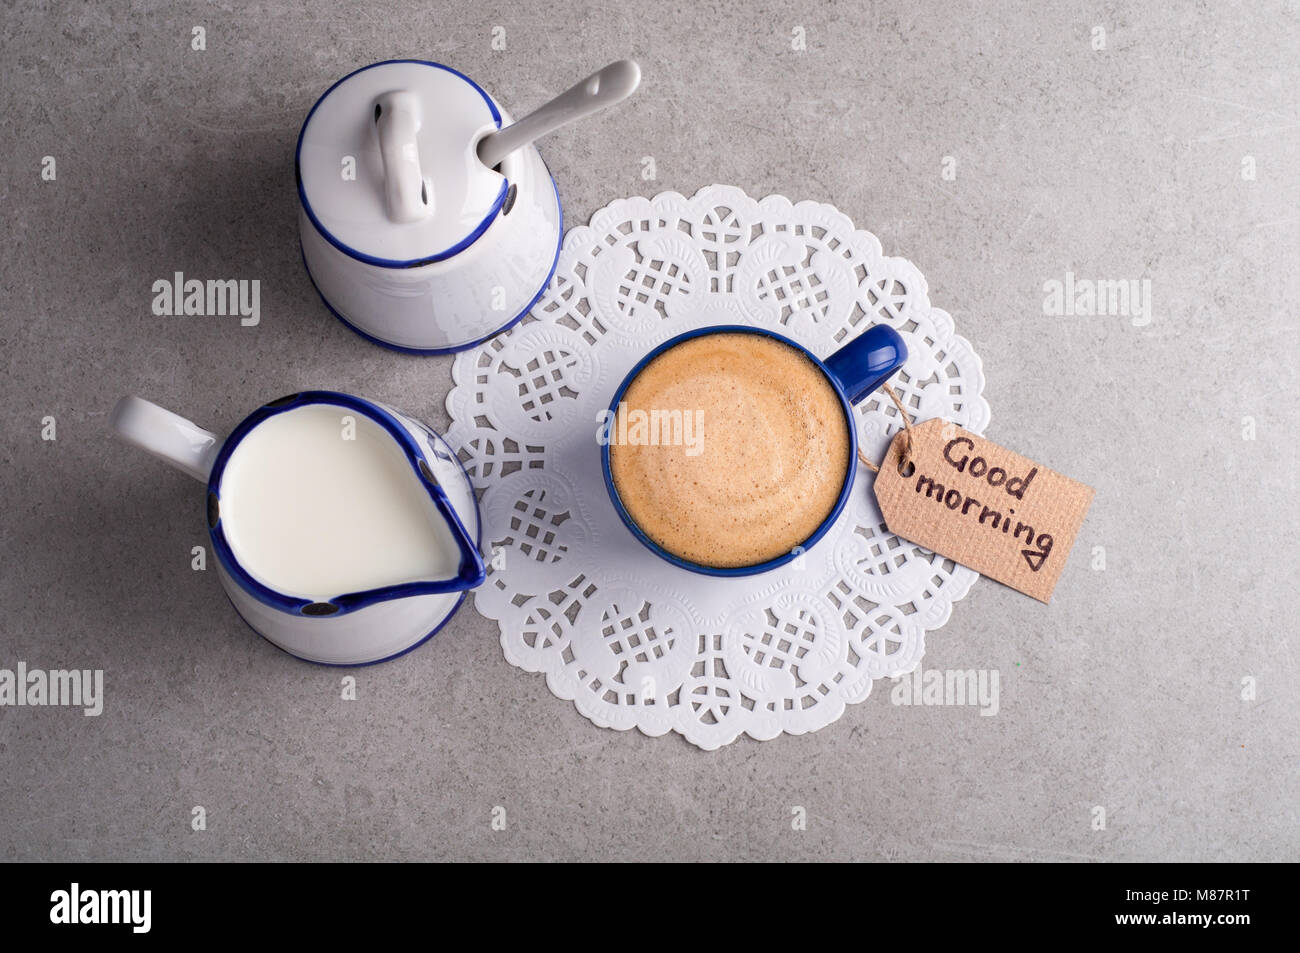 Coffe cup and note good morning. Breakfast concept. Top view - Stock Image